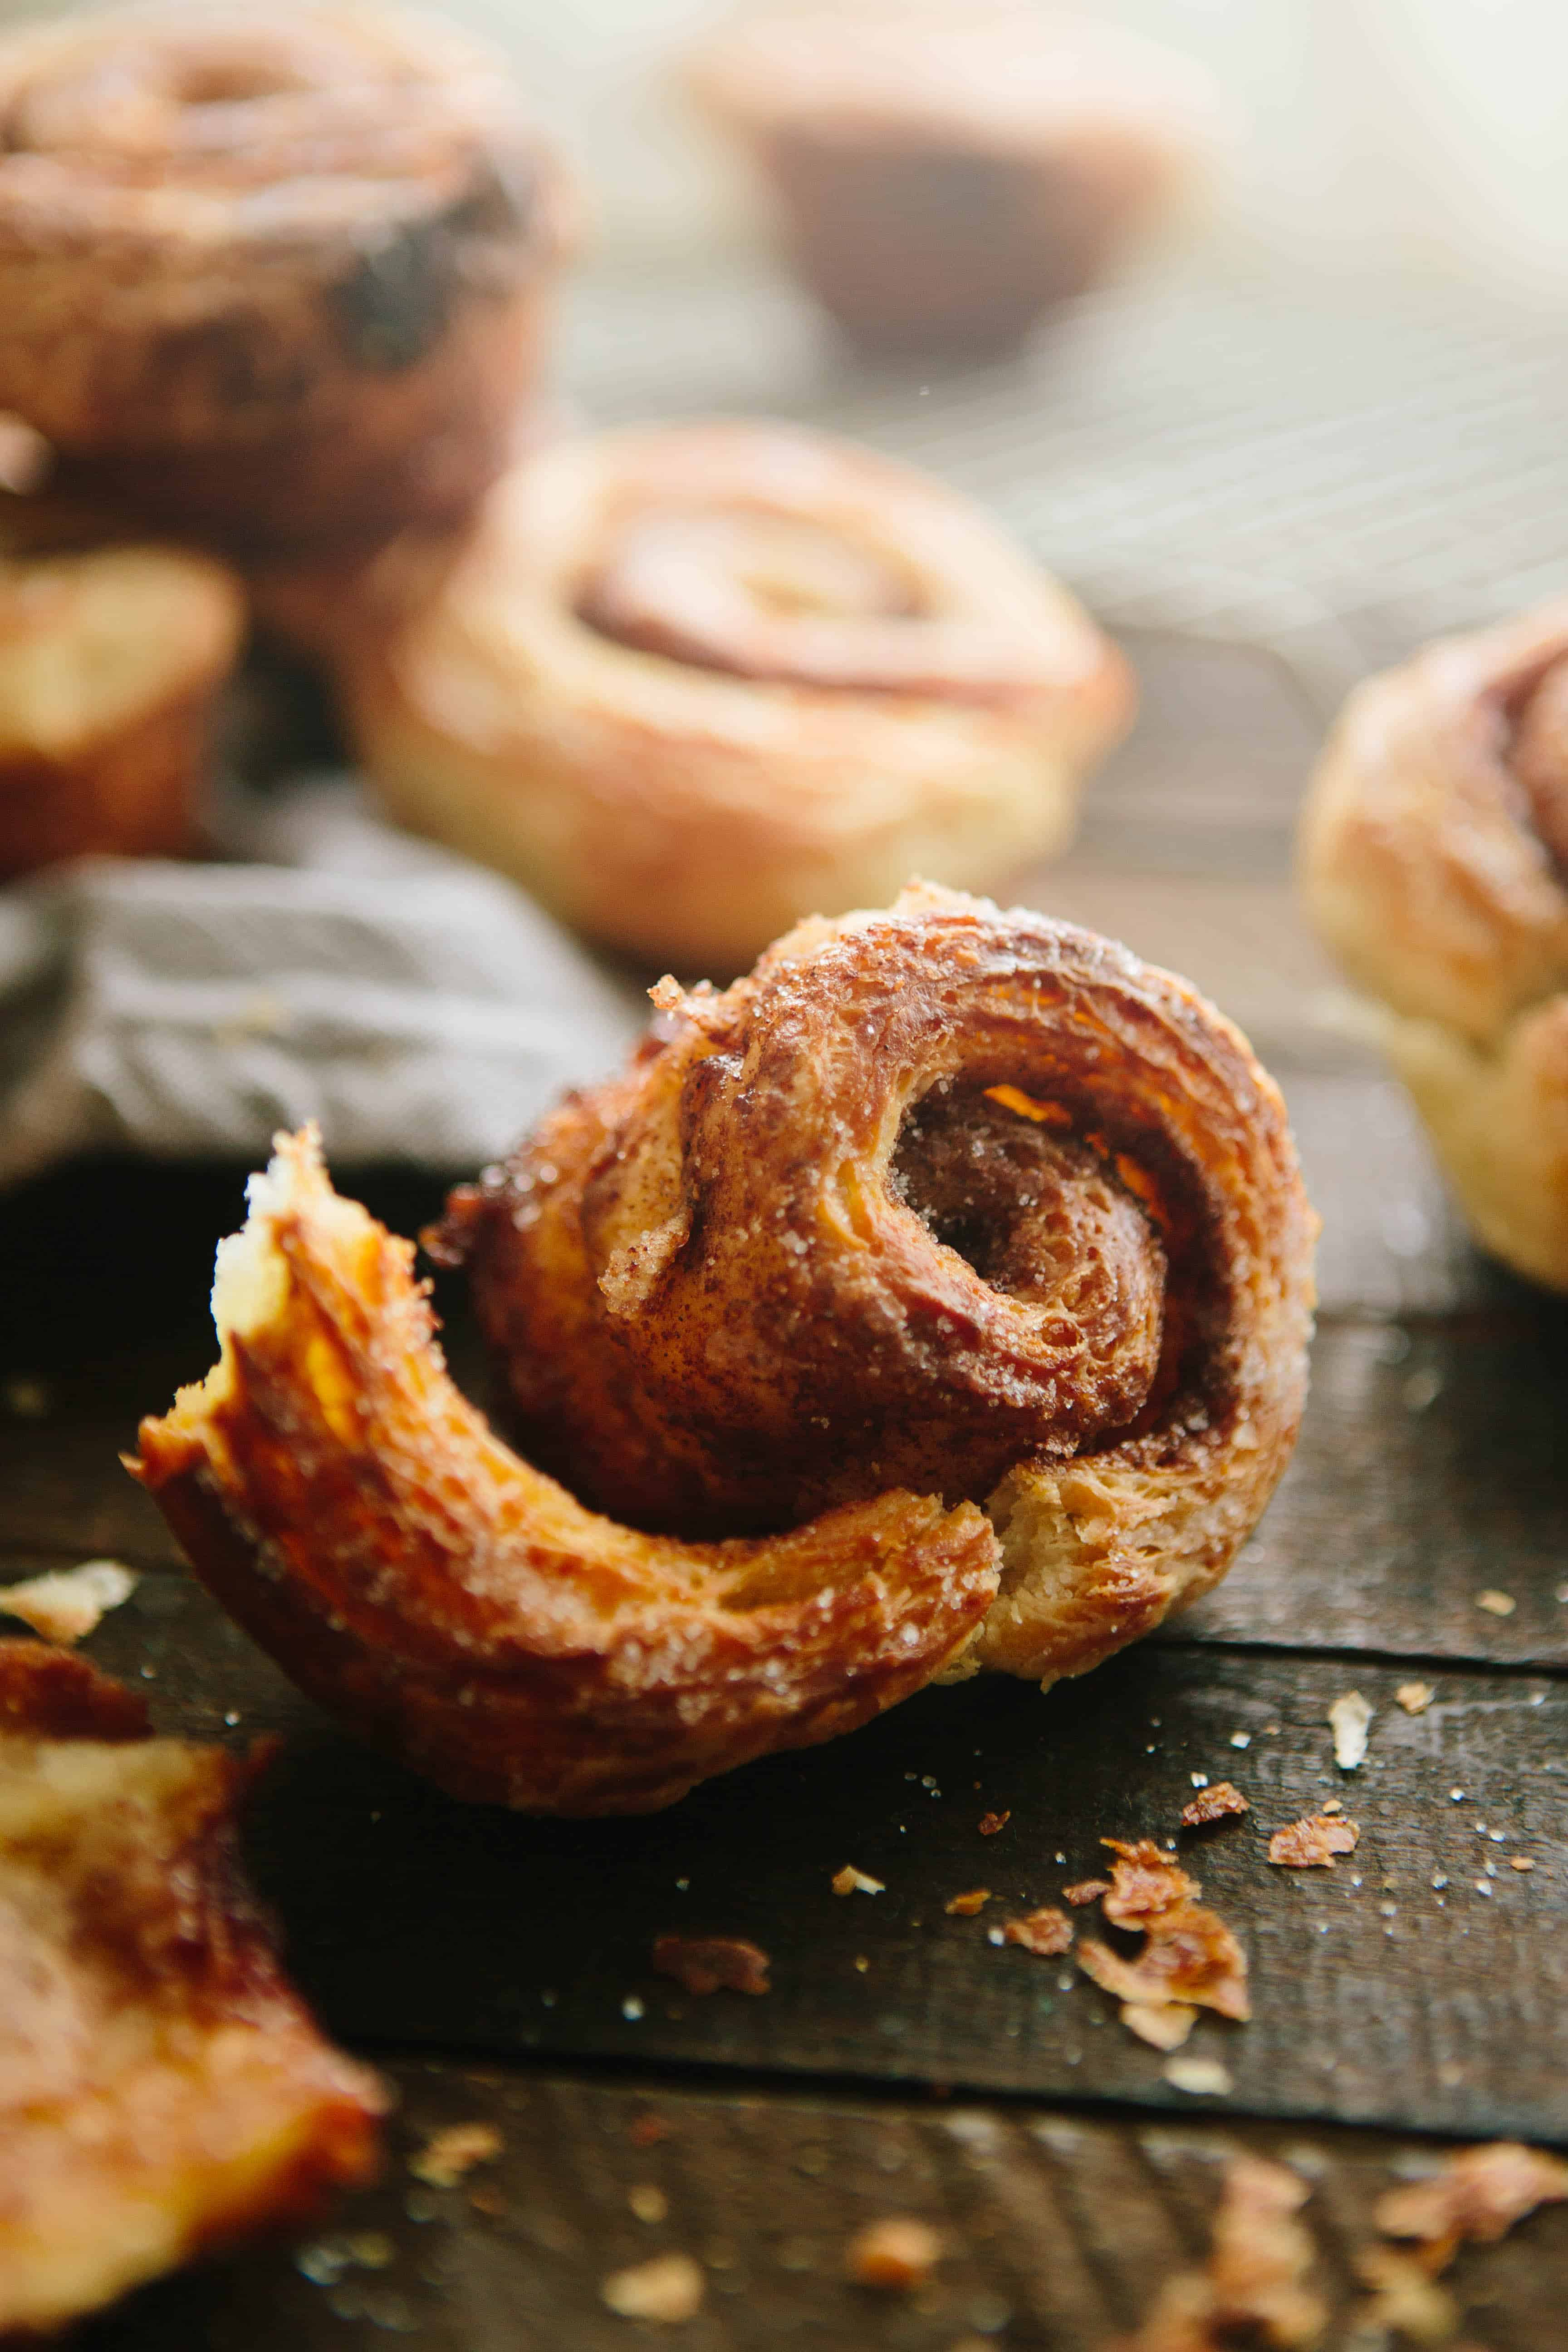 Close up of a croissant morning bun being unrolled.